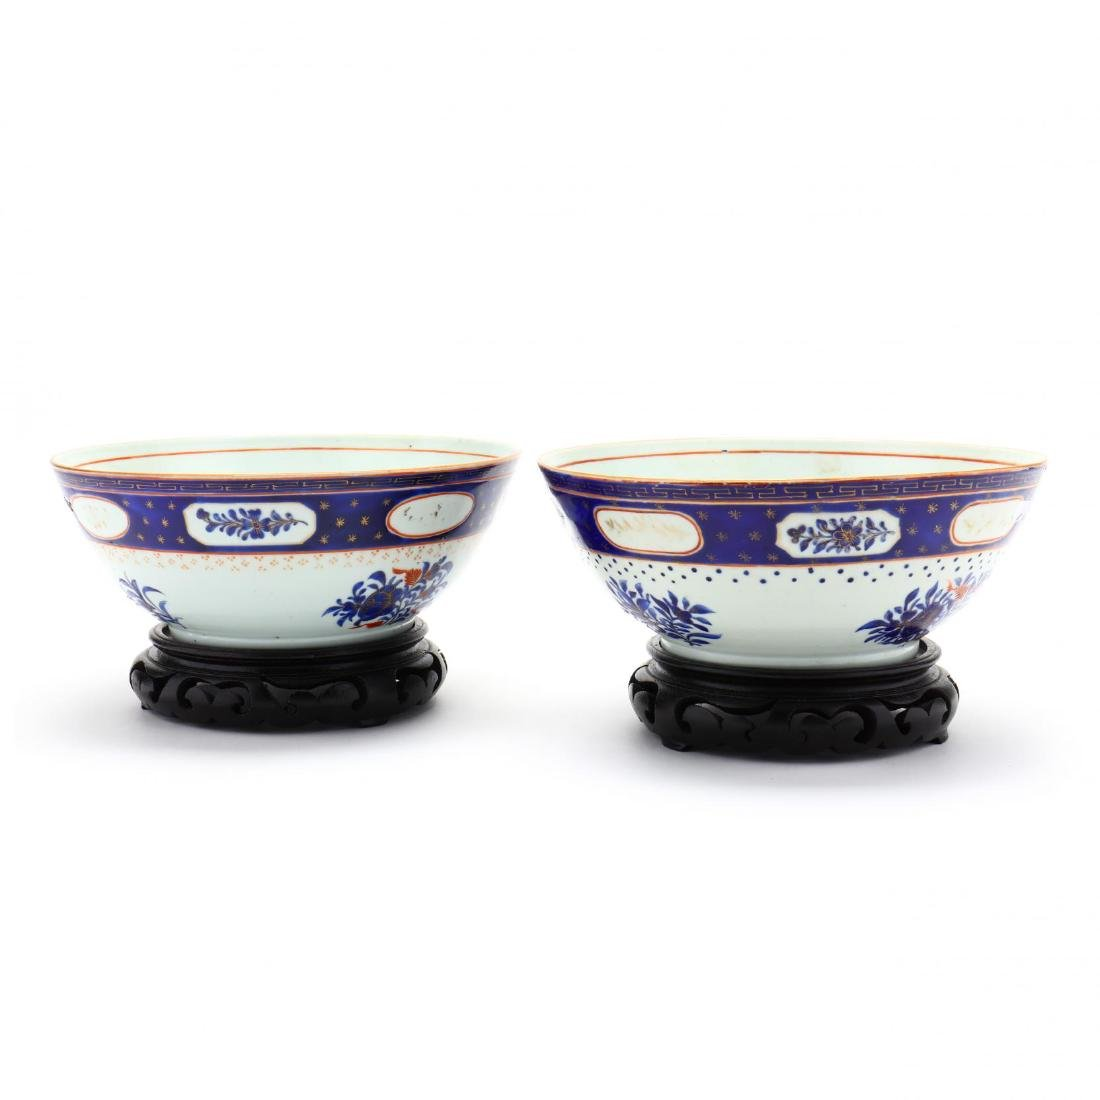 Pair of Antique Chinese Export Porcelain Bowls